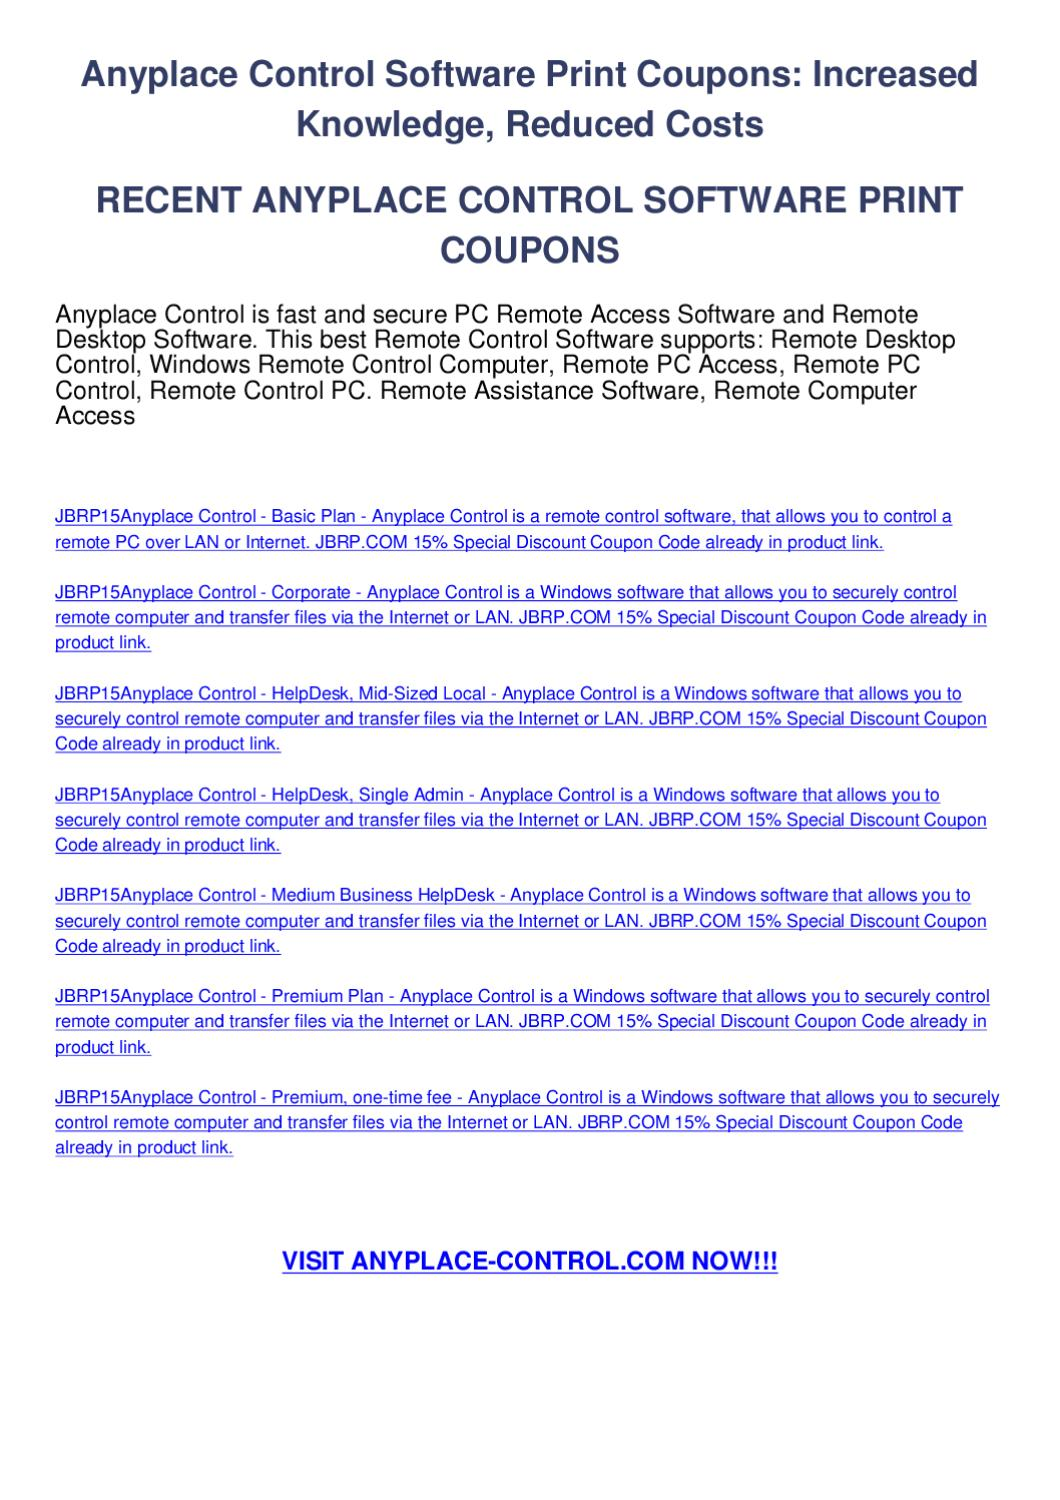 Anyplace control software print coupons by melis zereng - issuu